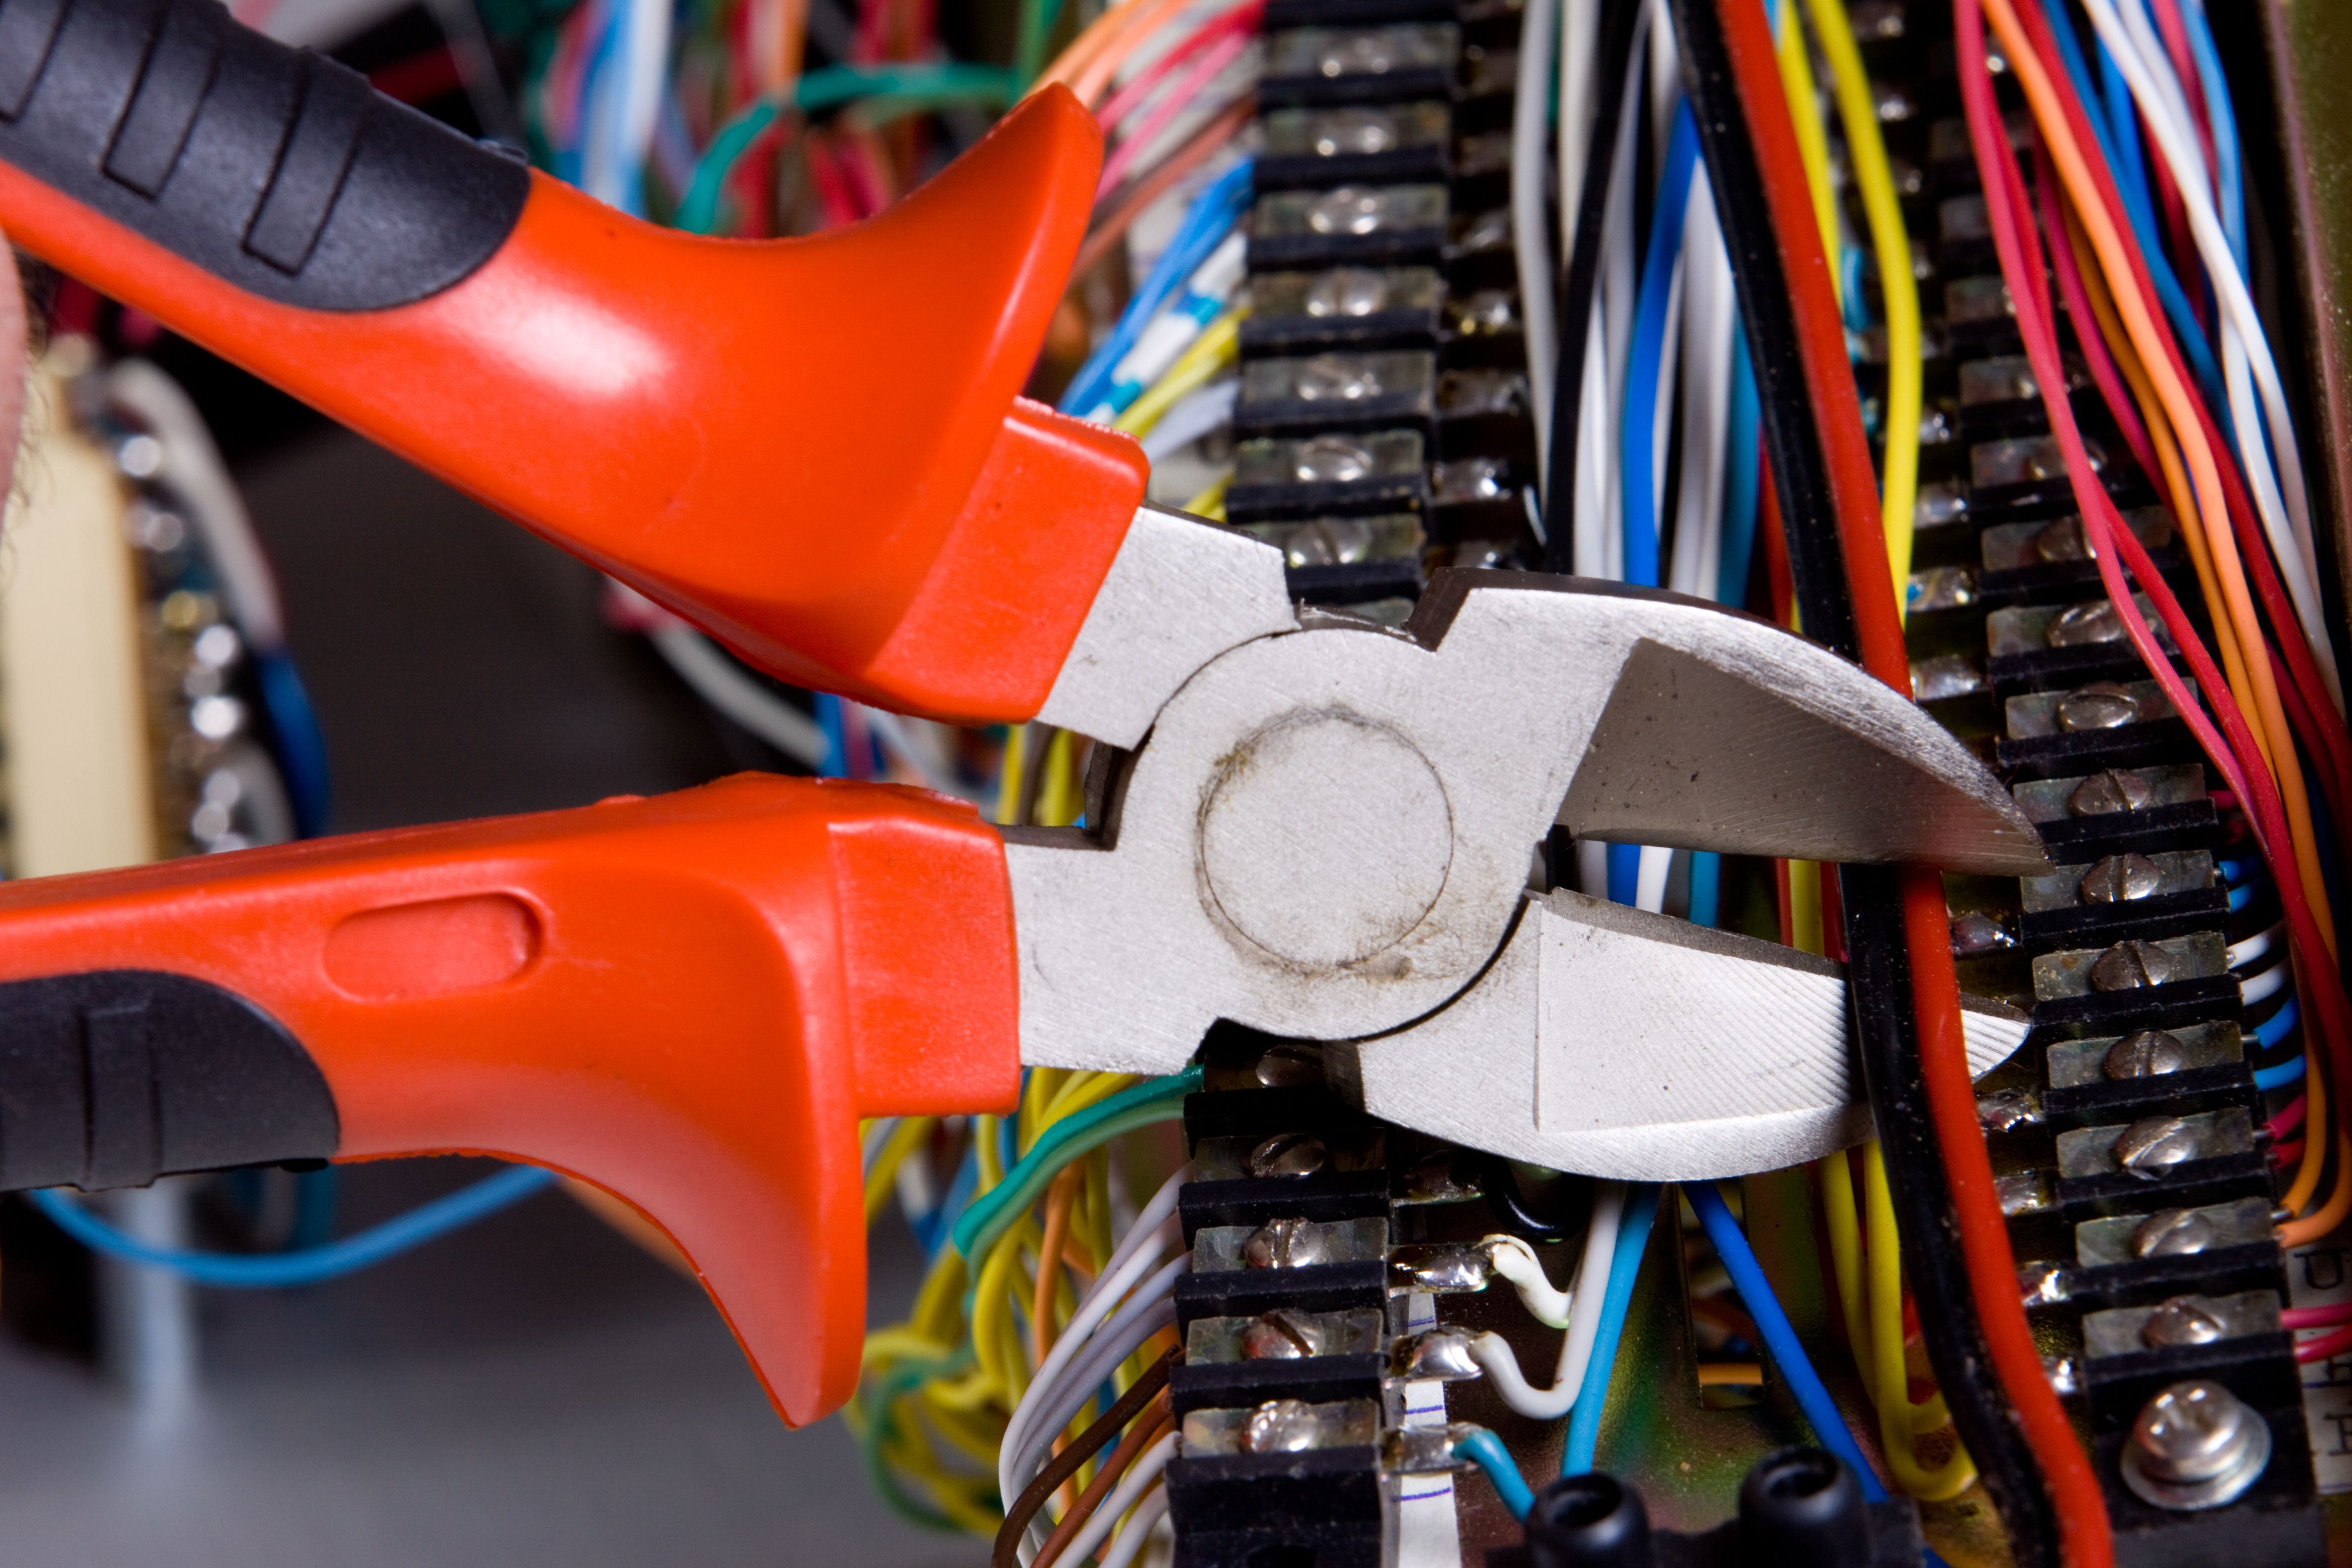 For Electrical Wiring Or Installing New Electrical Panels A Master